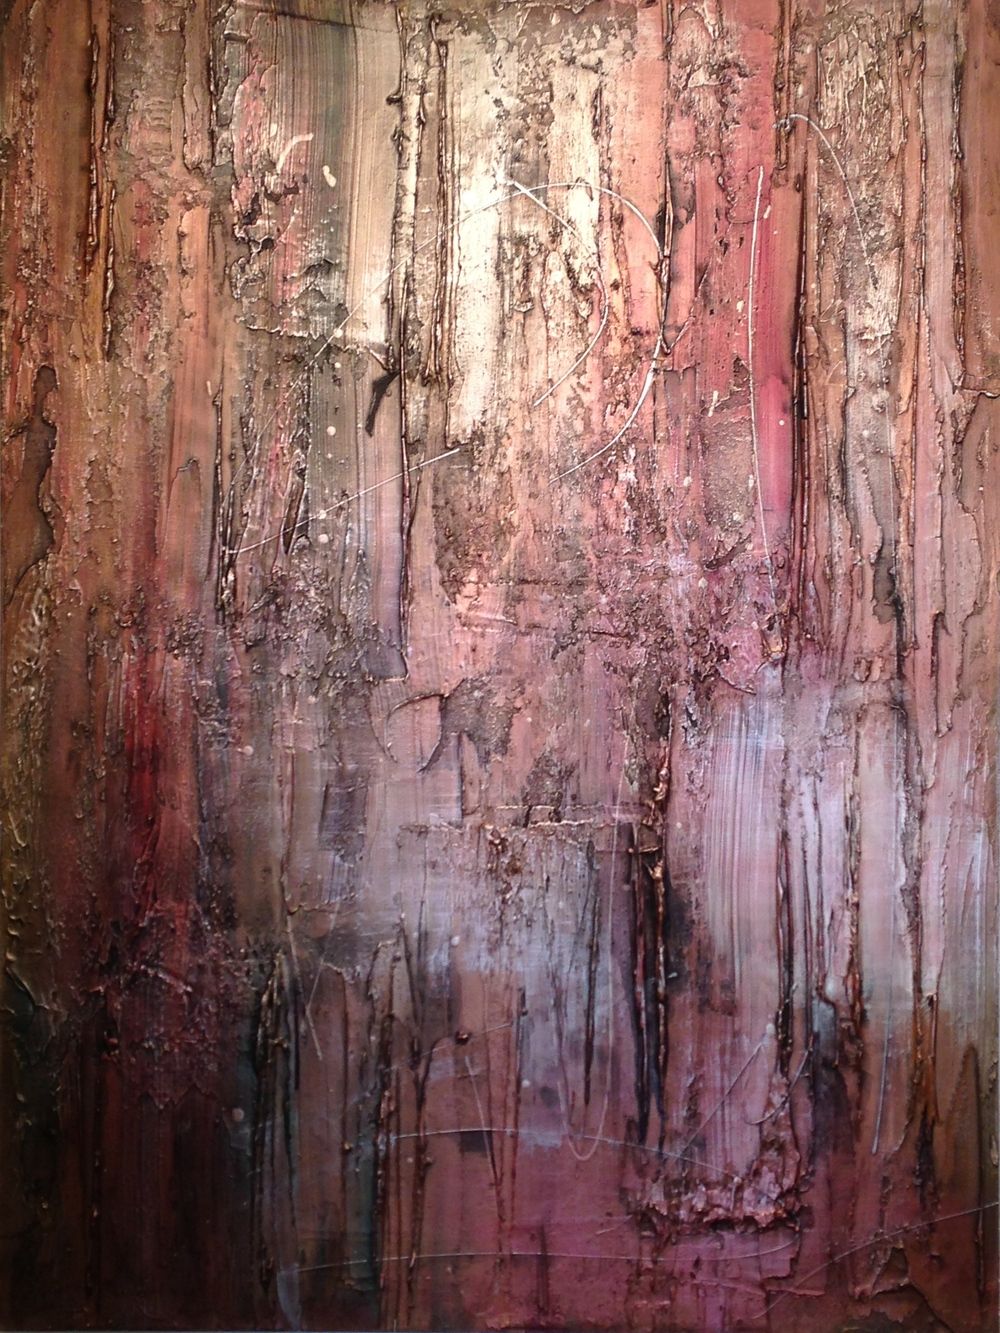 marquis  48 x 36 x 1.5 inches  mixed media, metallic powders on canvas  $2,700